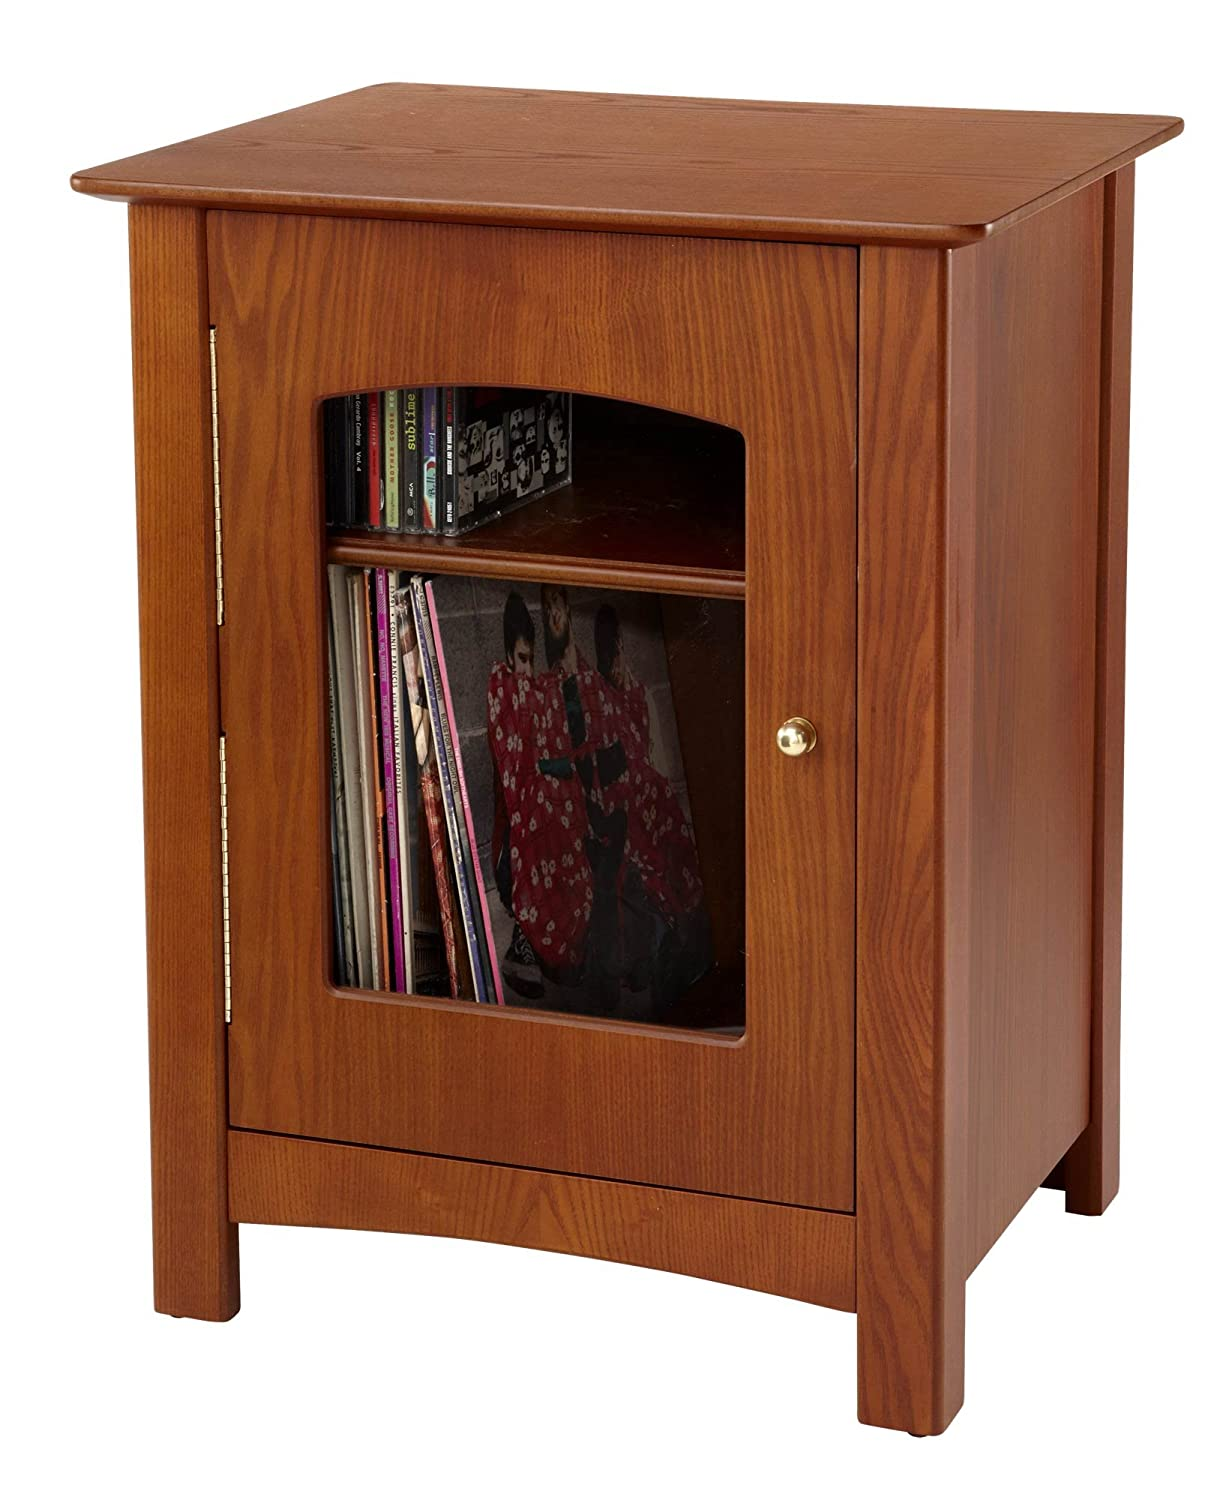 Crosley Record Player Cabinet Cabinets Matttroy